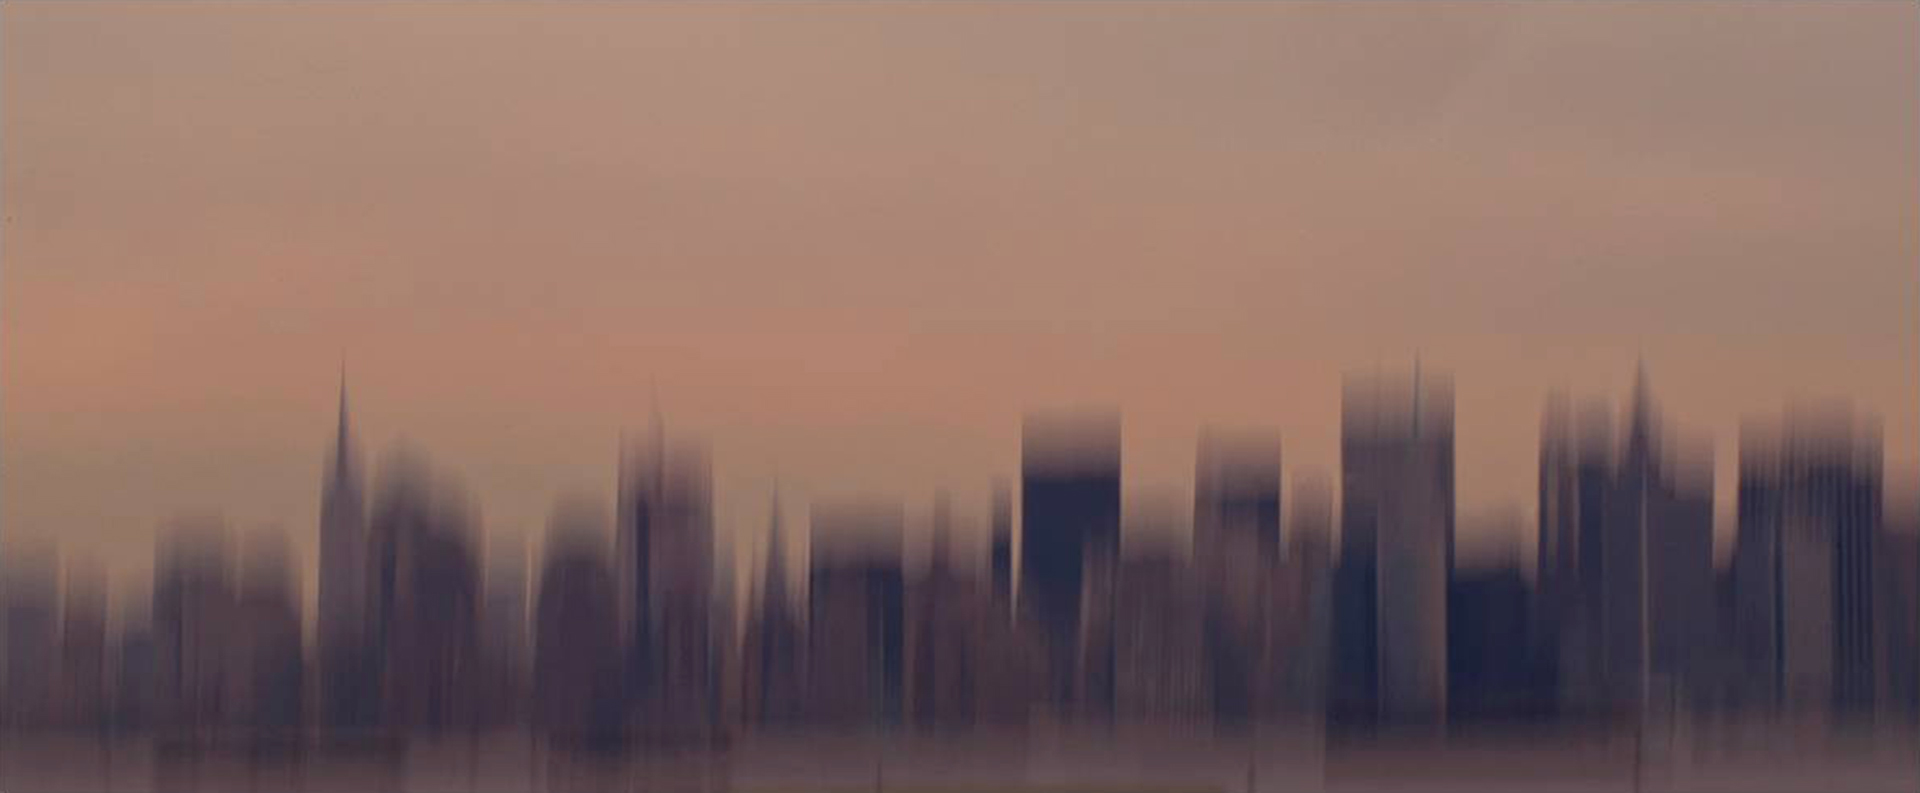 STEFANO ZARDINI New York City Manhattan Skyline